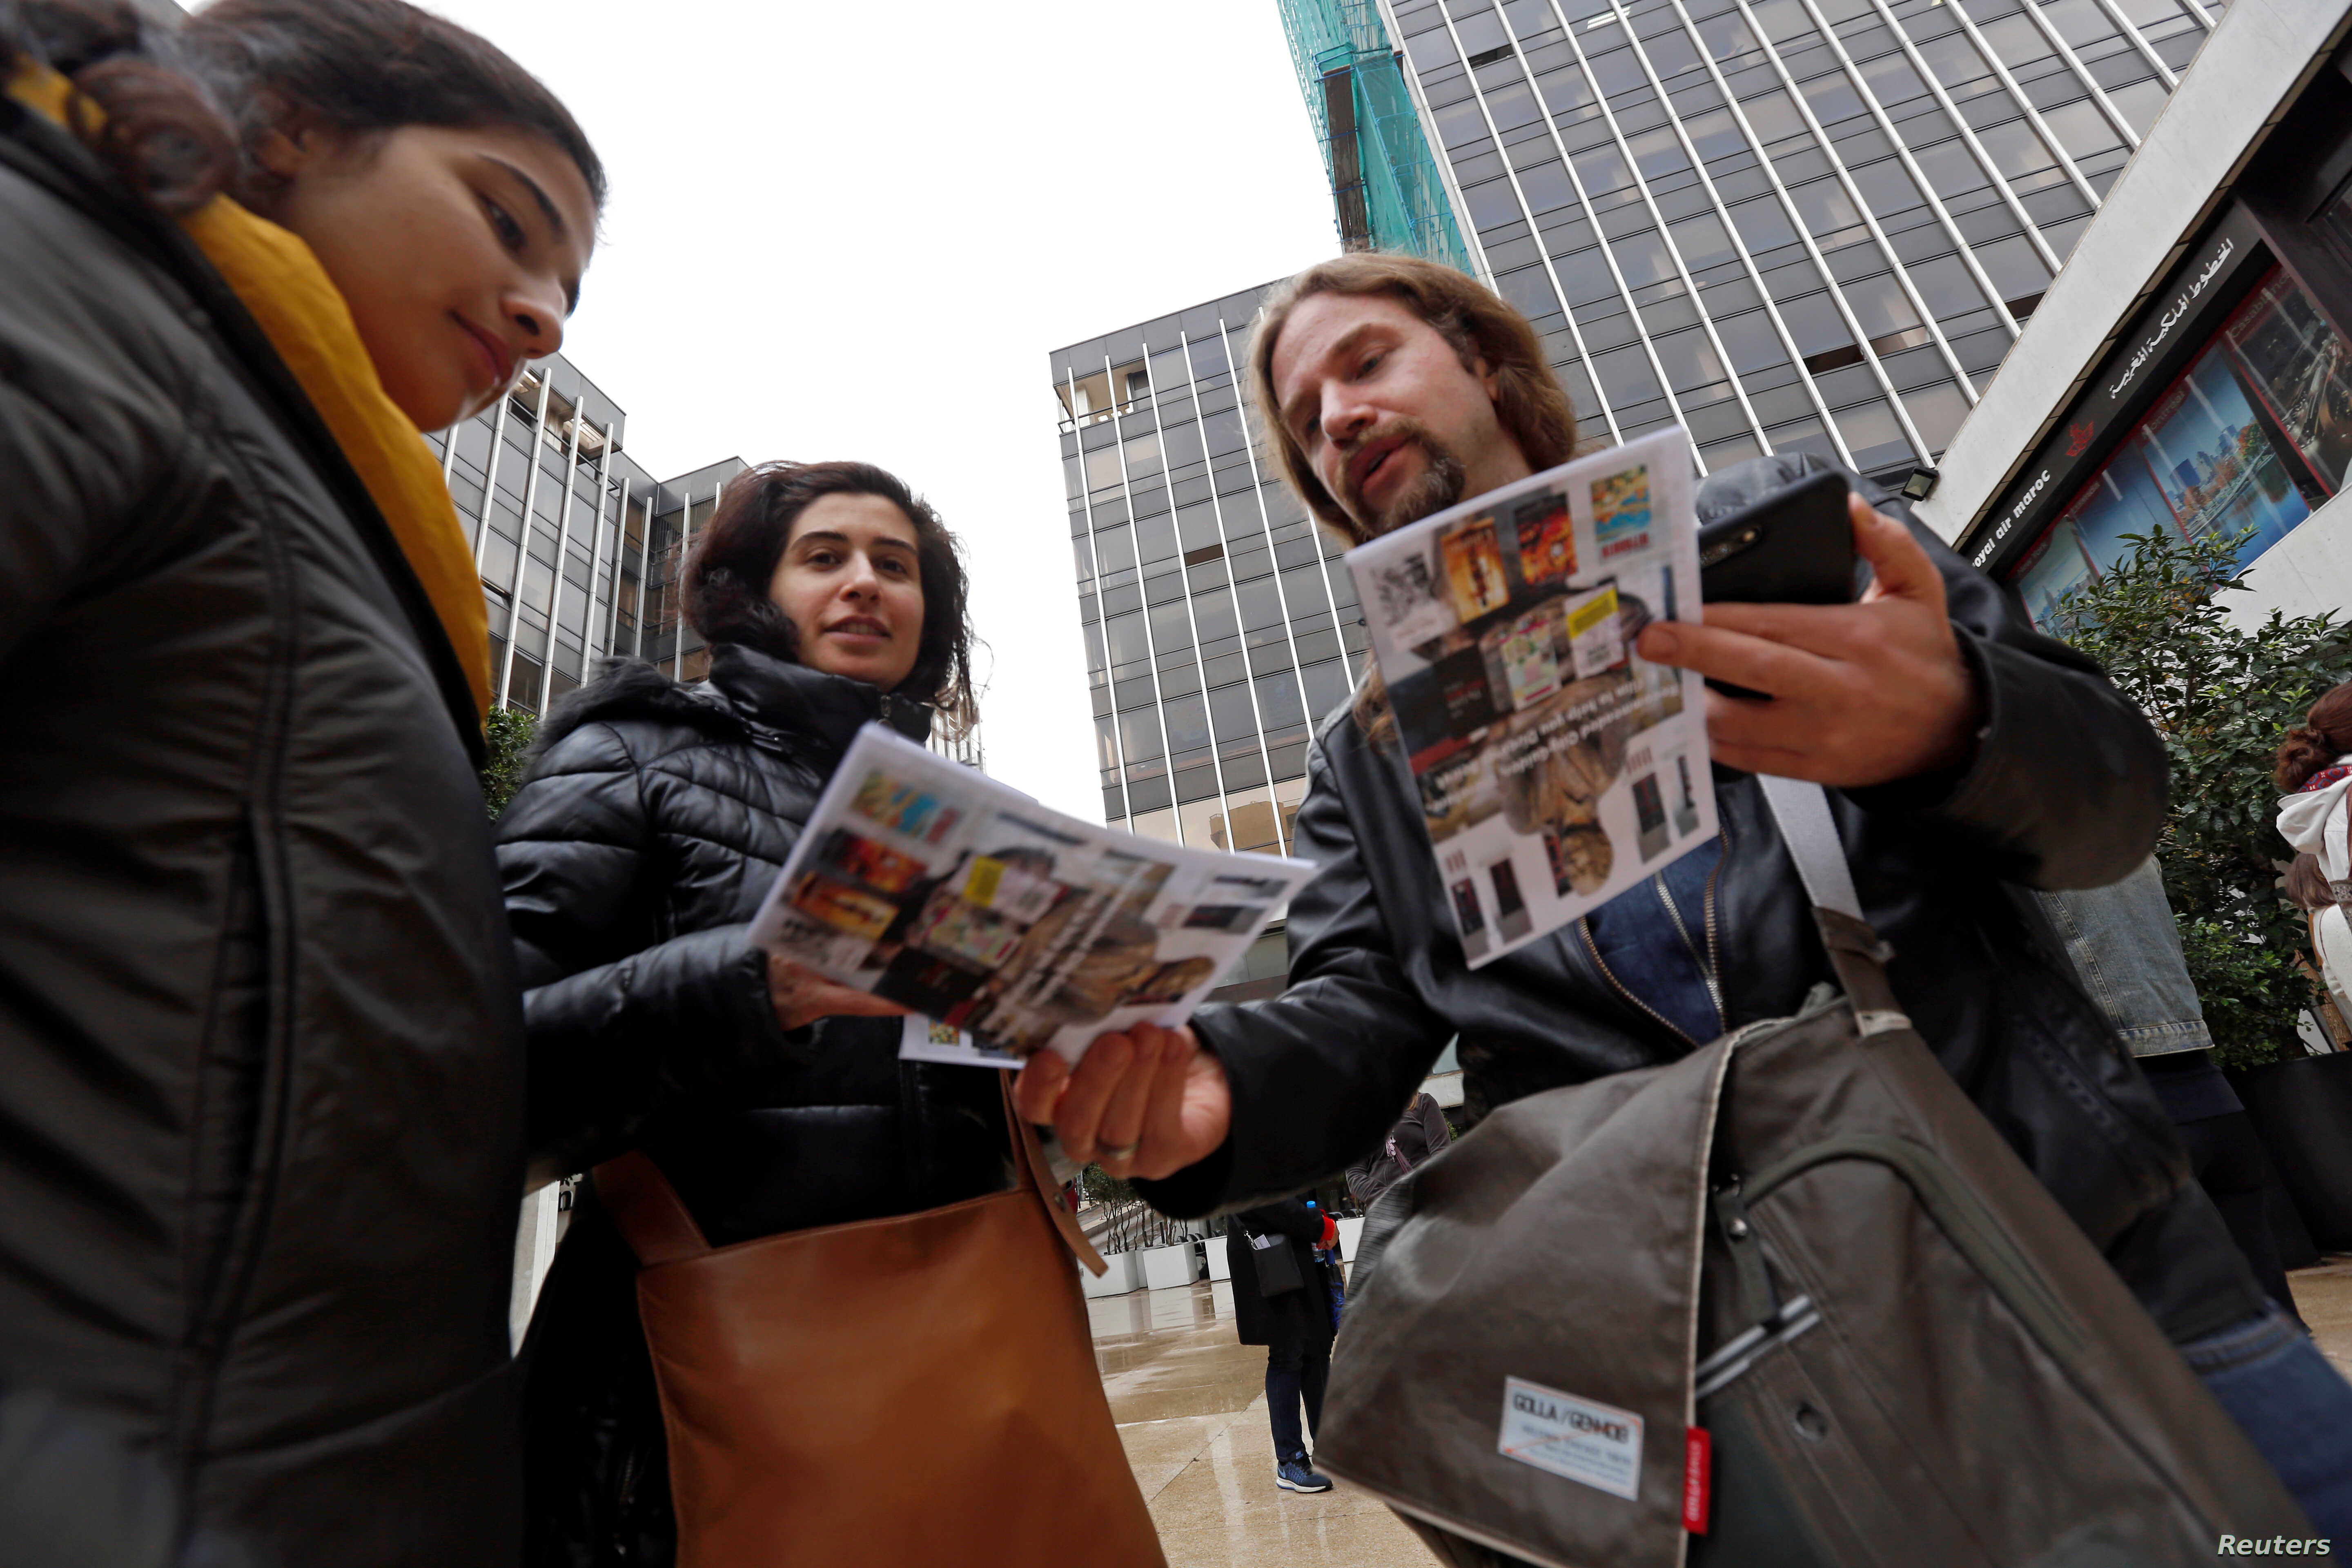 Tour guide Ronnie Chatah, 36, gives the tour brochures to visitors in Beirut, Lebanon, Jan. 28, 2018.